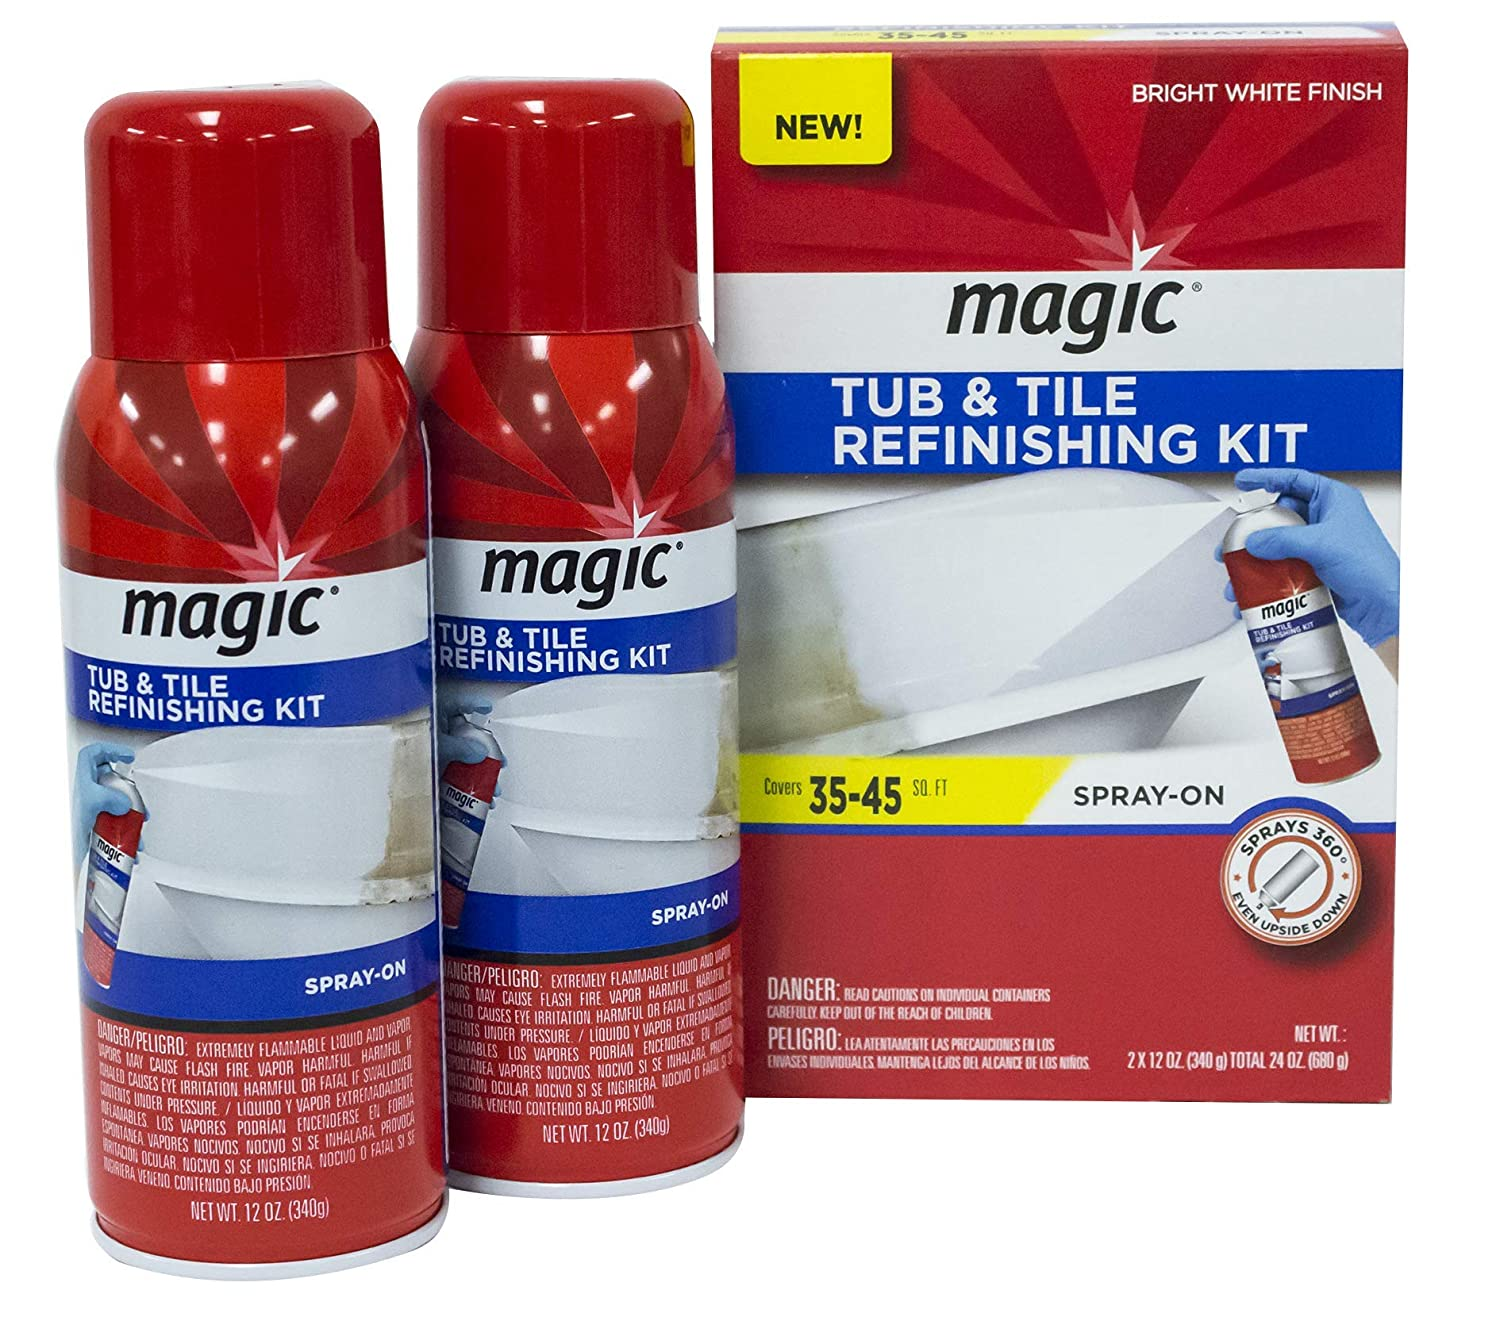 2. Magic Tub and Tile Refinishing Kit (Bright White) Spray on Aerosol